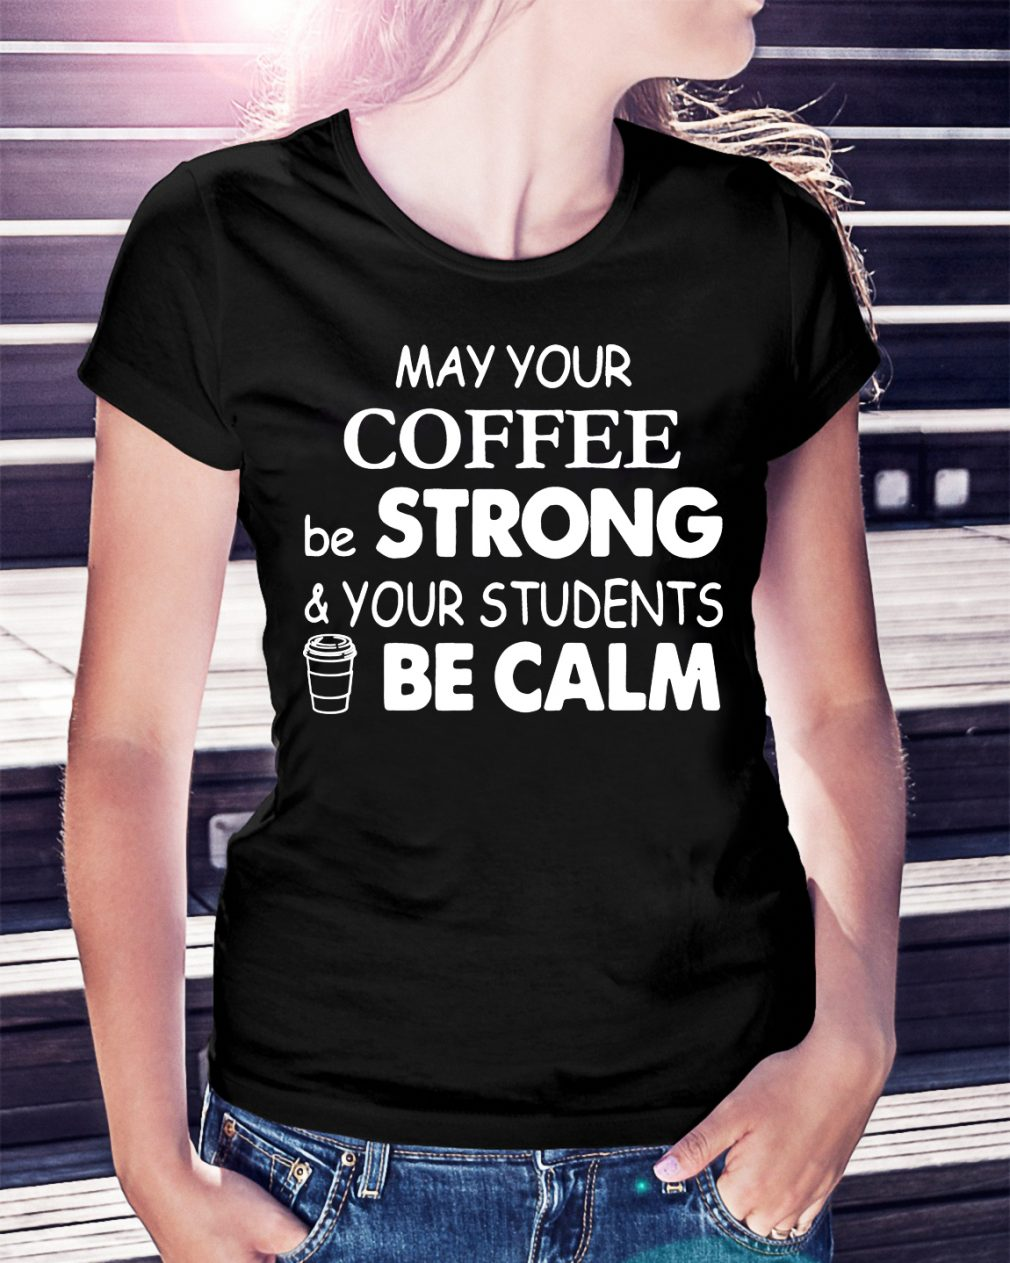 Official May your coffee be strong and your students be calm shirt